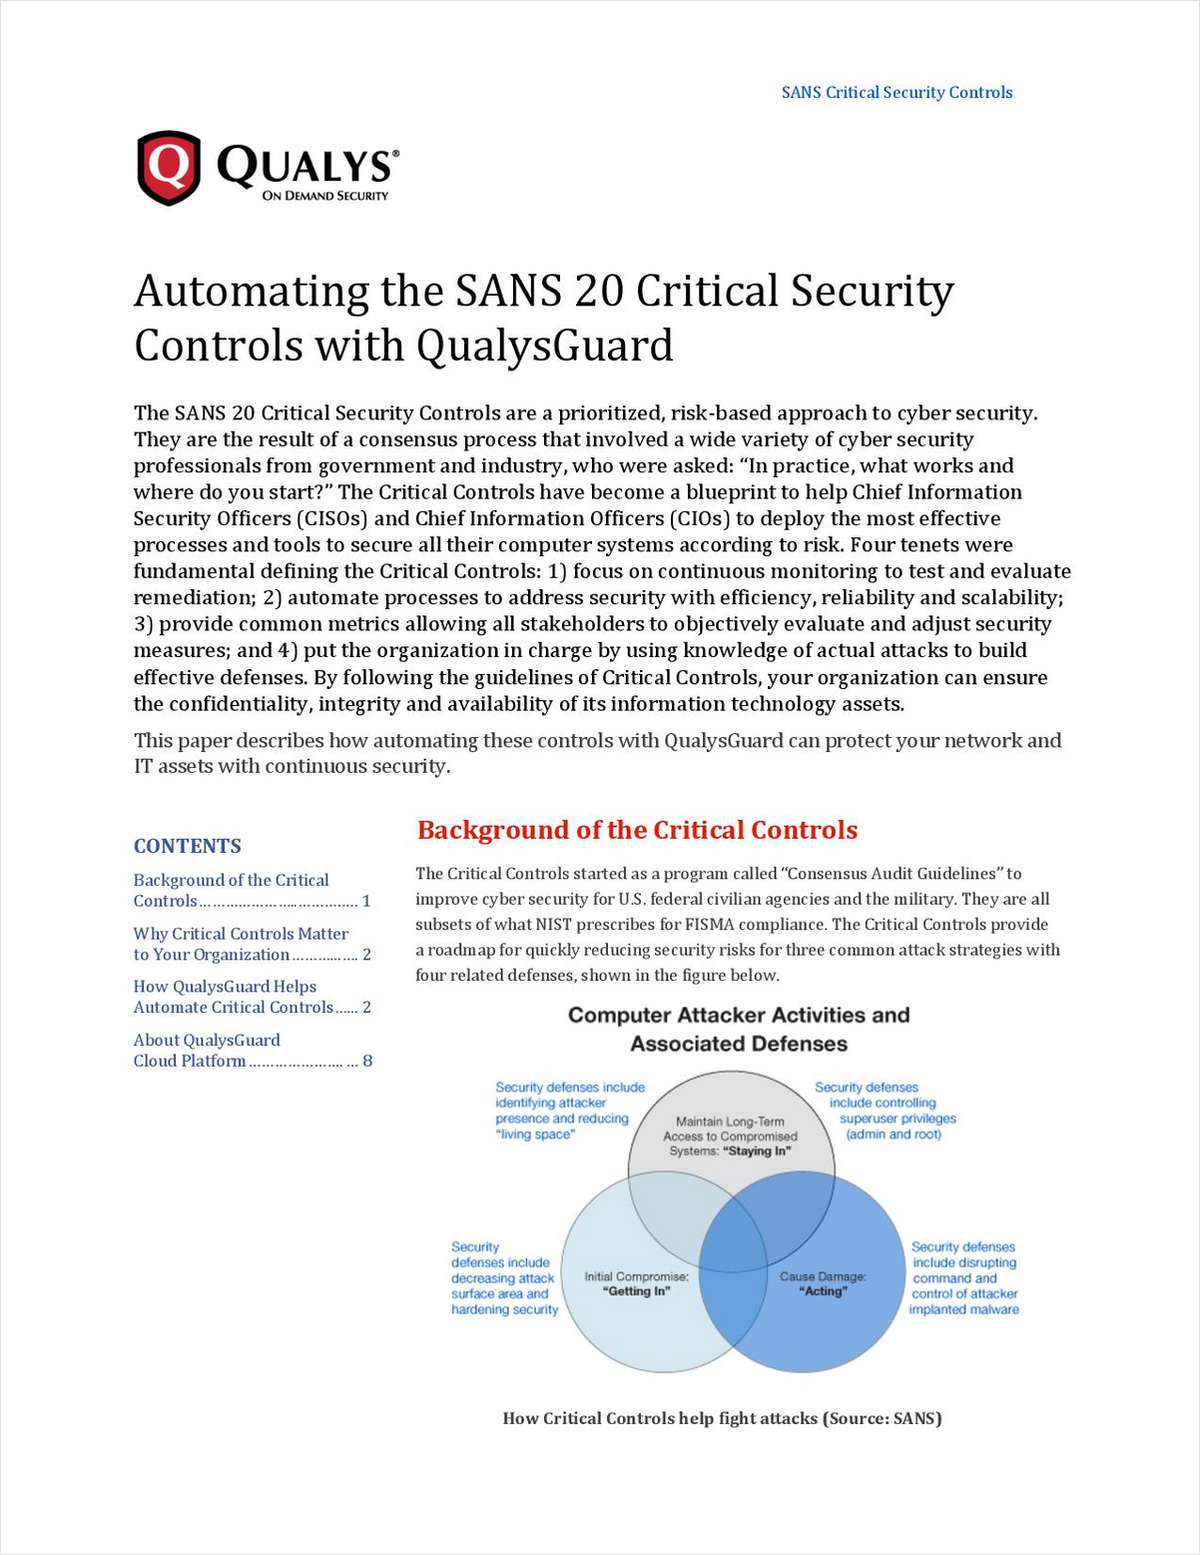 Automating the SANS 20 Critical Security Controls with QualysGuard